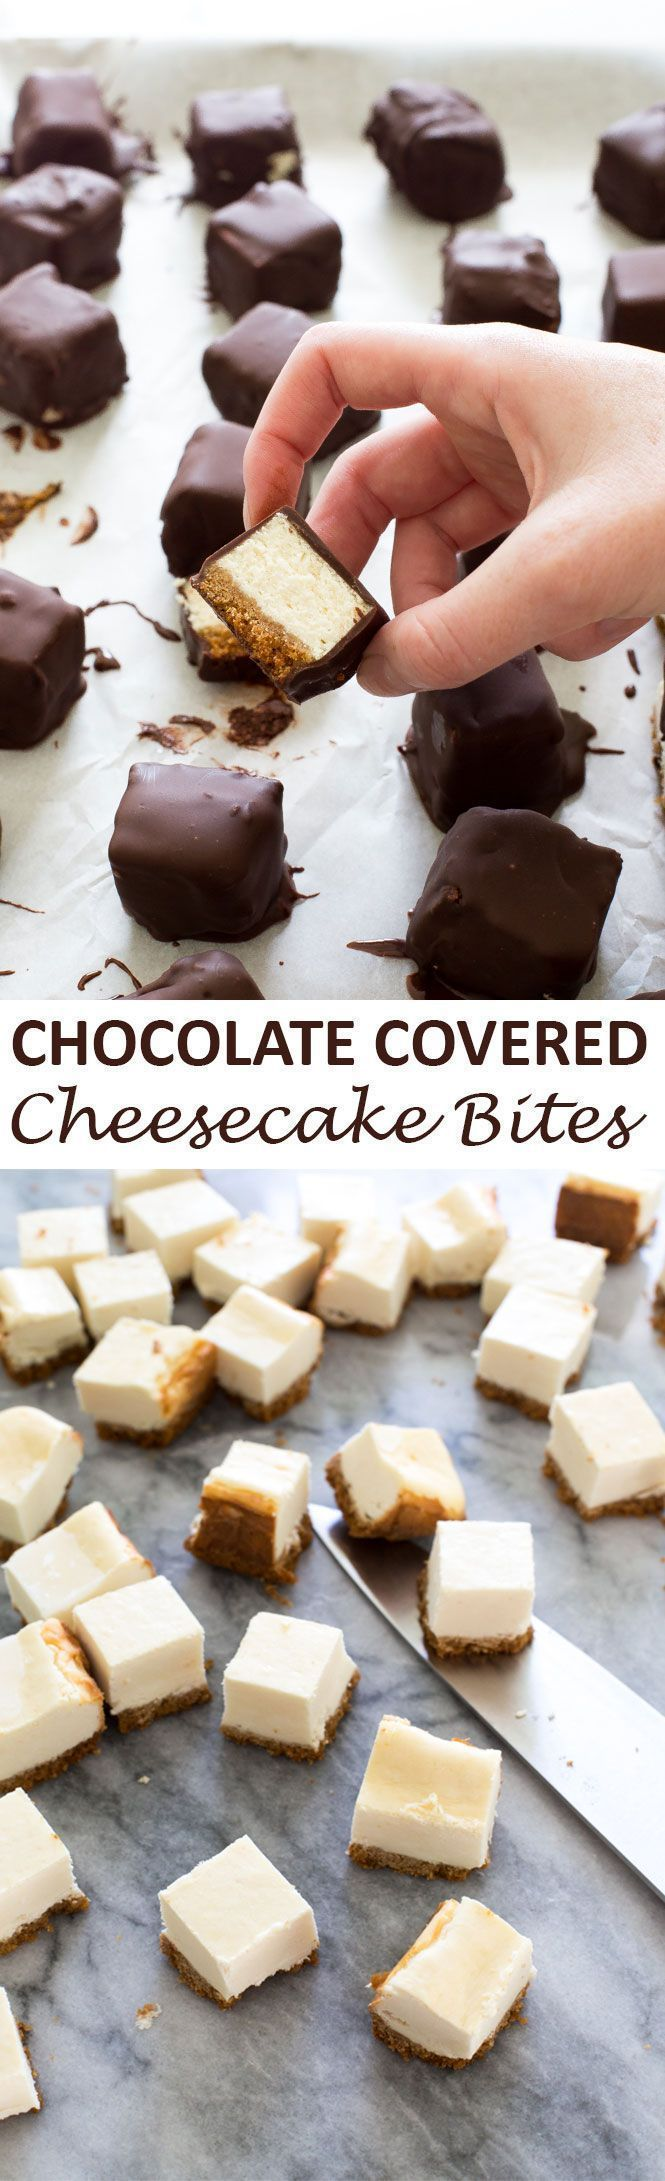 Chocolate Covered Cheesecake Bites. Perfect bite-sized cheesecake covered in a sweet chocolate shell coating.